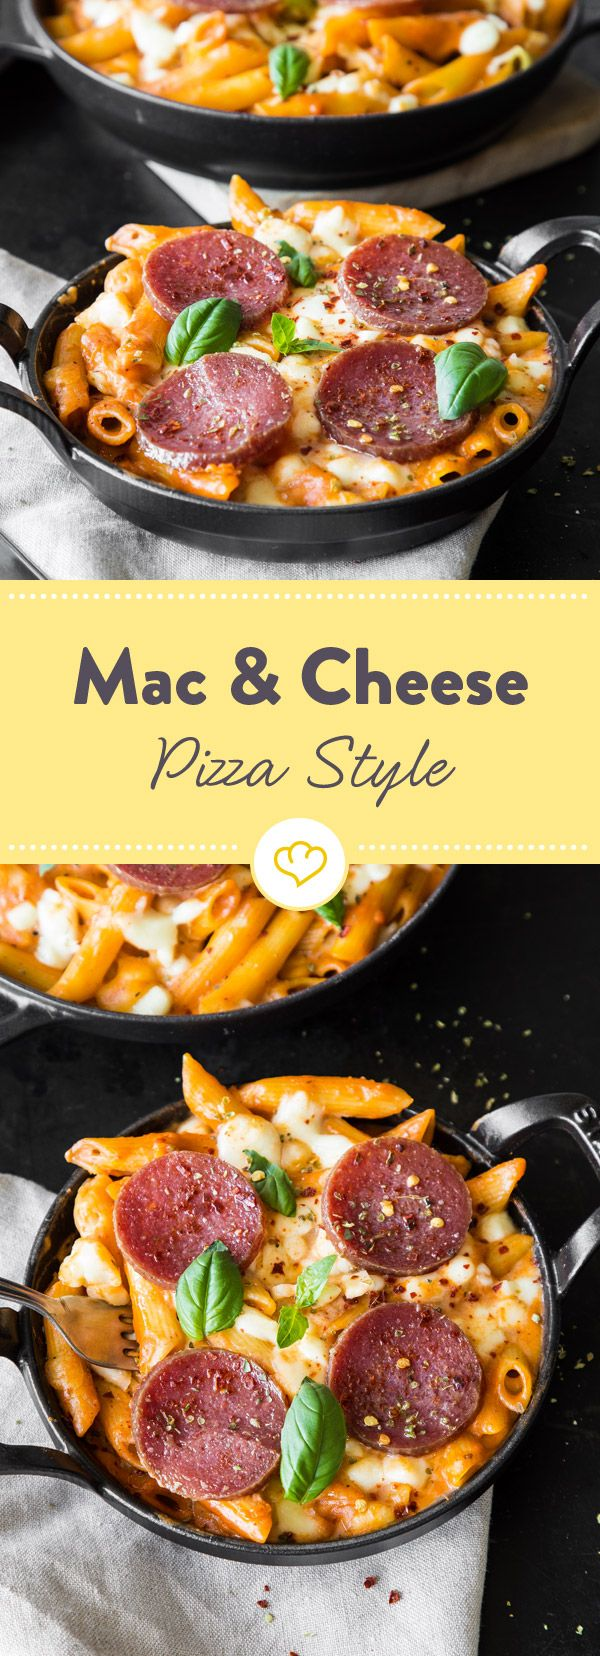 Mac & Cheese Pizza Style